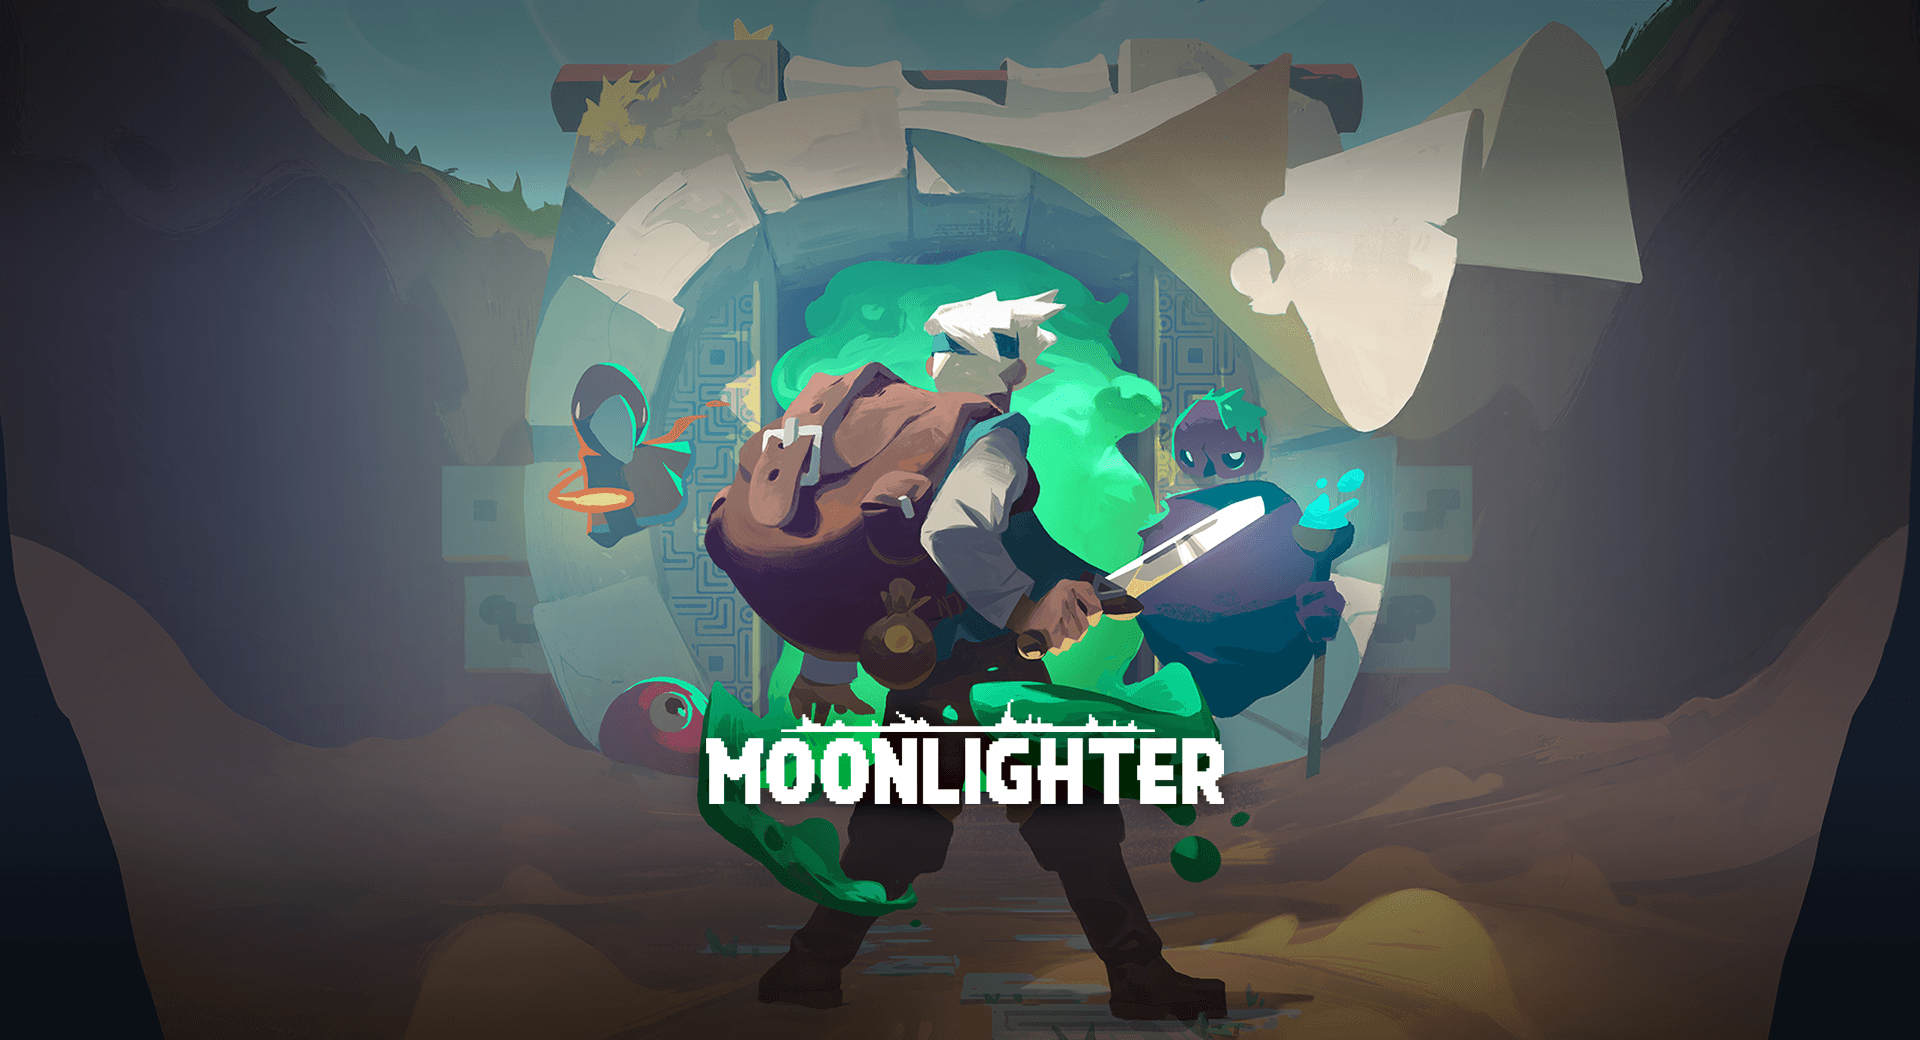 Shop Keeping Action RPG Moonlighter Announced for Mobile! Will include reworked controls